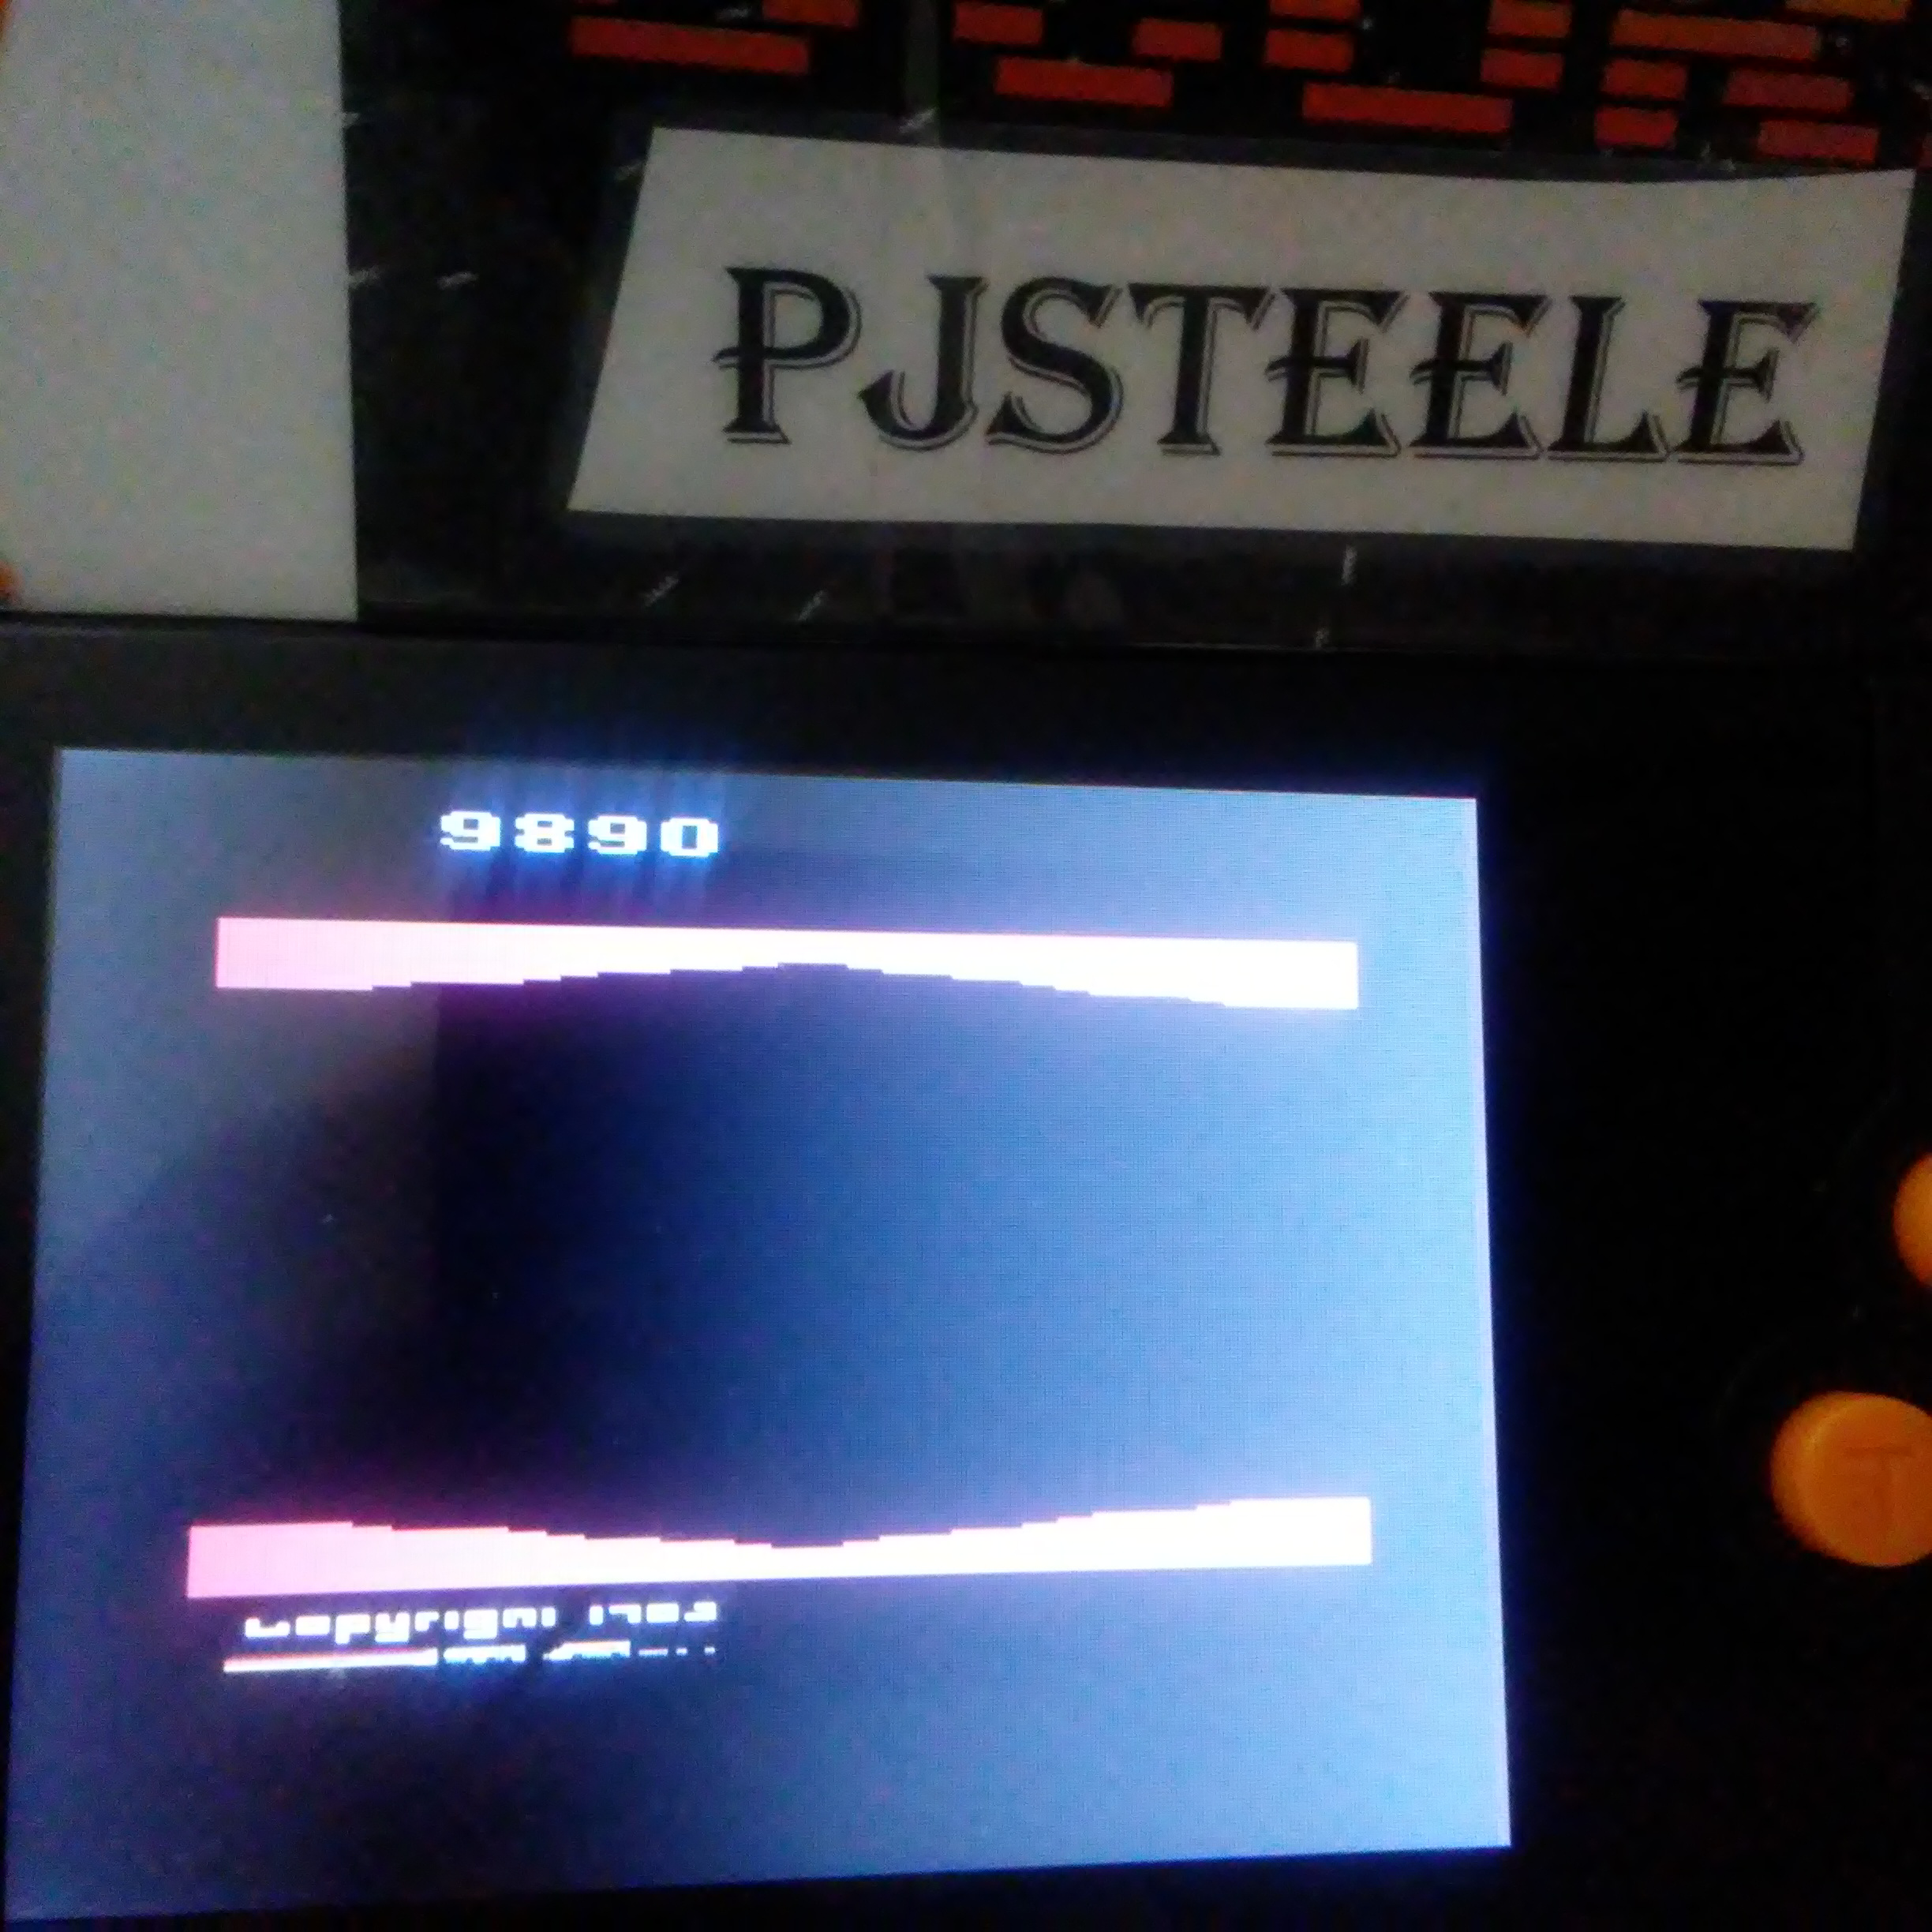 Pjsteele: Plaque Attack (Atari 2600 Emulated Novice/B Mode) 9,890 points on 2018-02-20 21:08:24